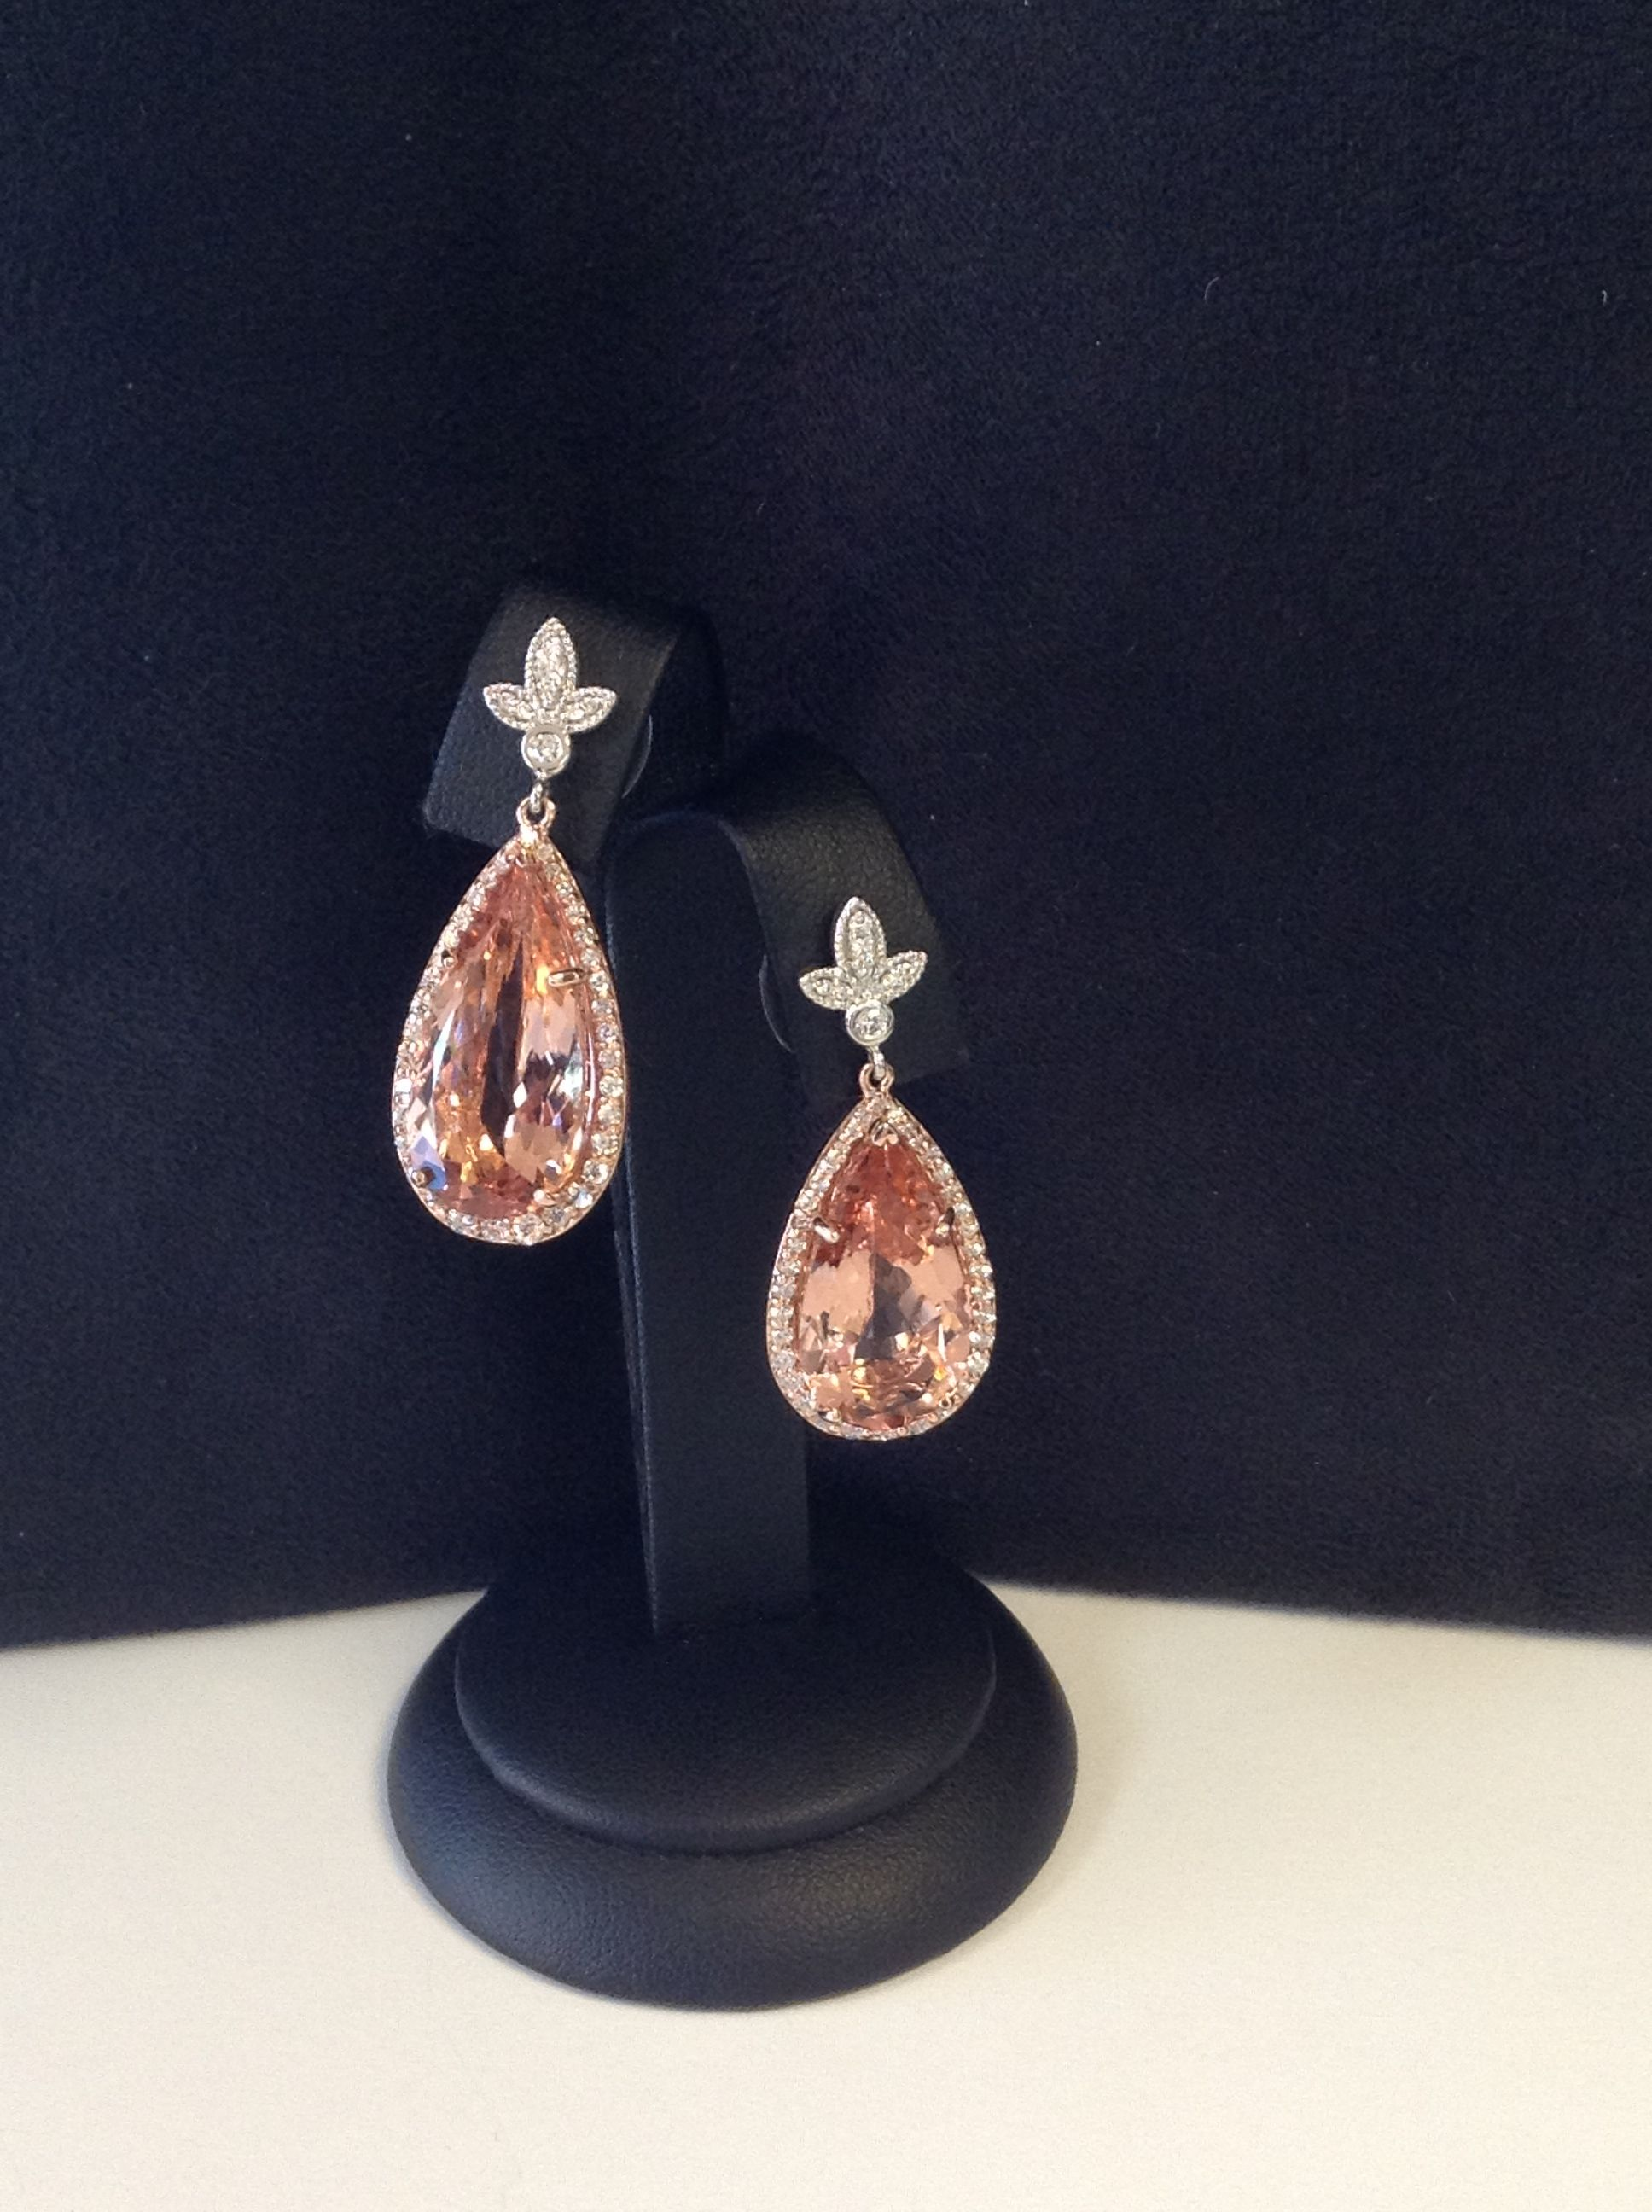 2138ct pear shaped morganite and diamond earrings Set in rose and